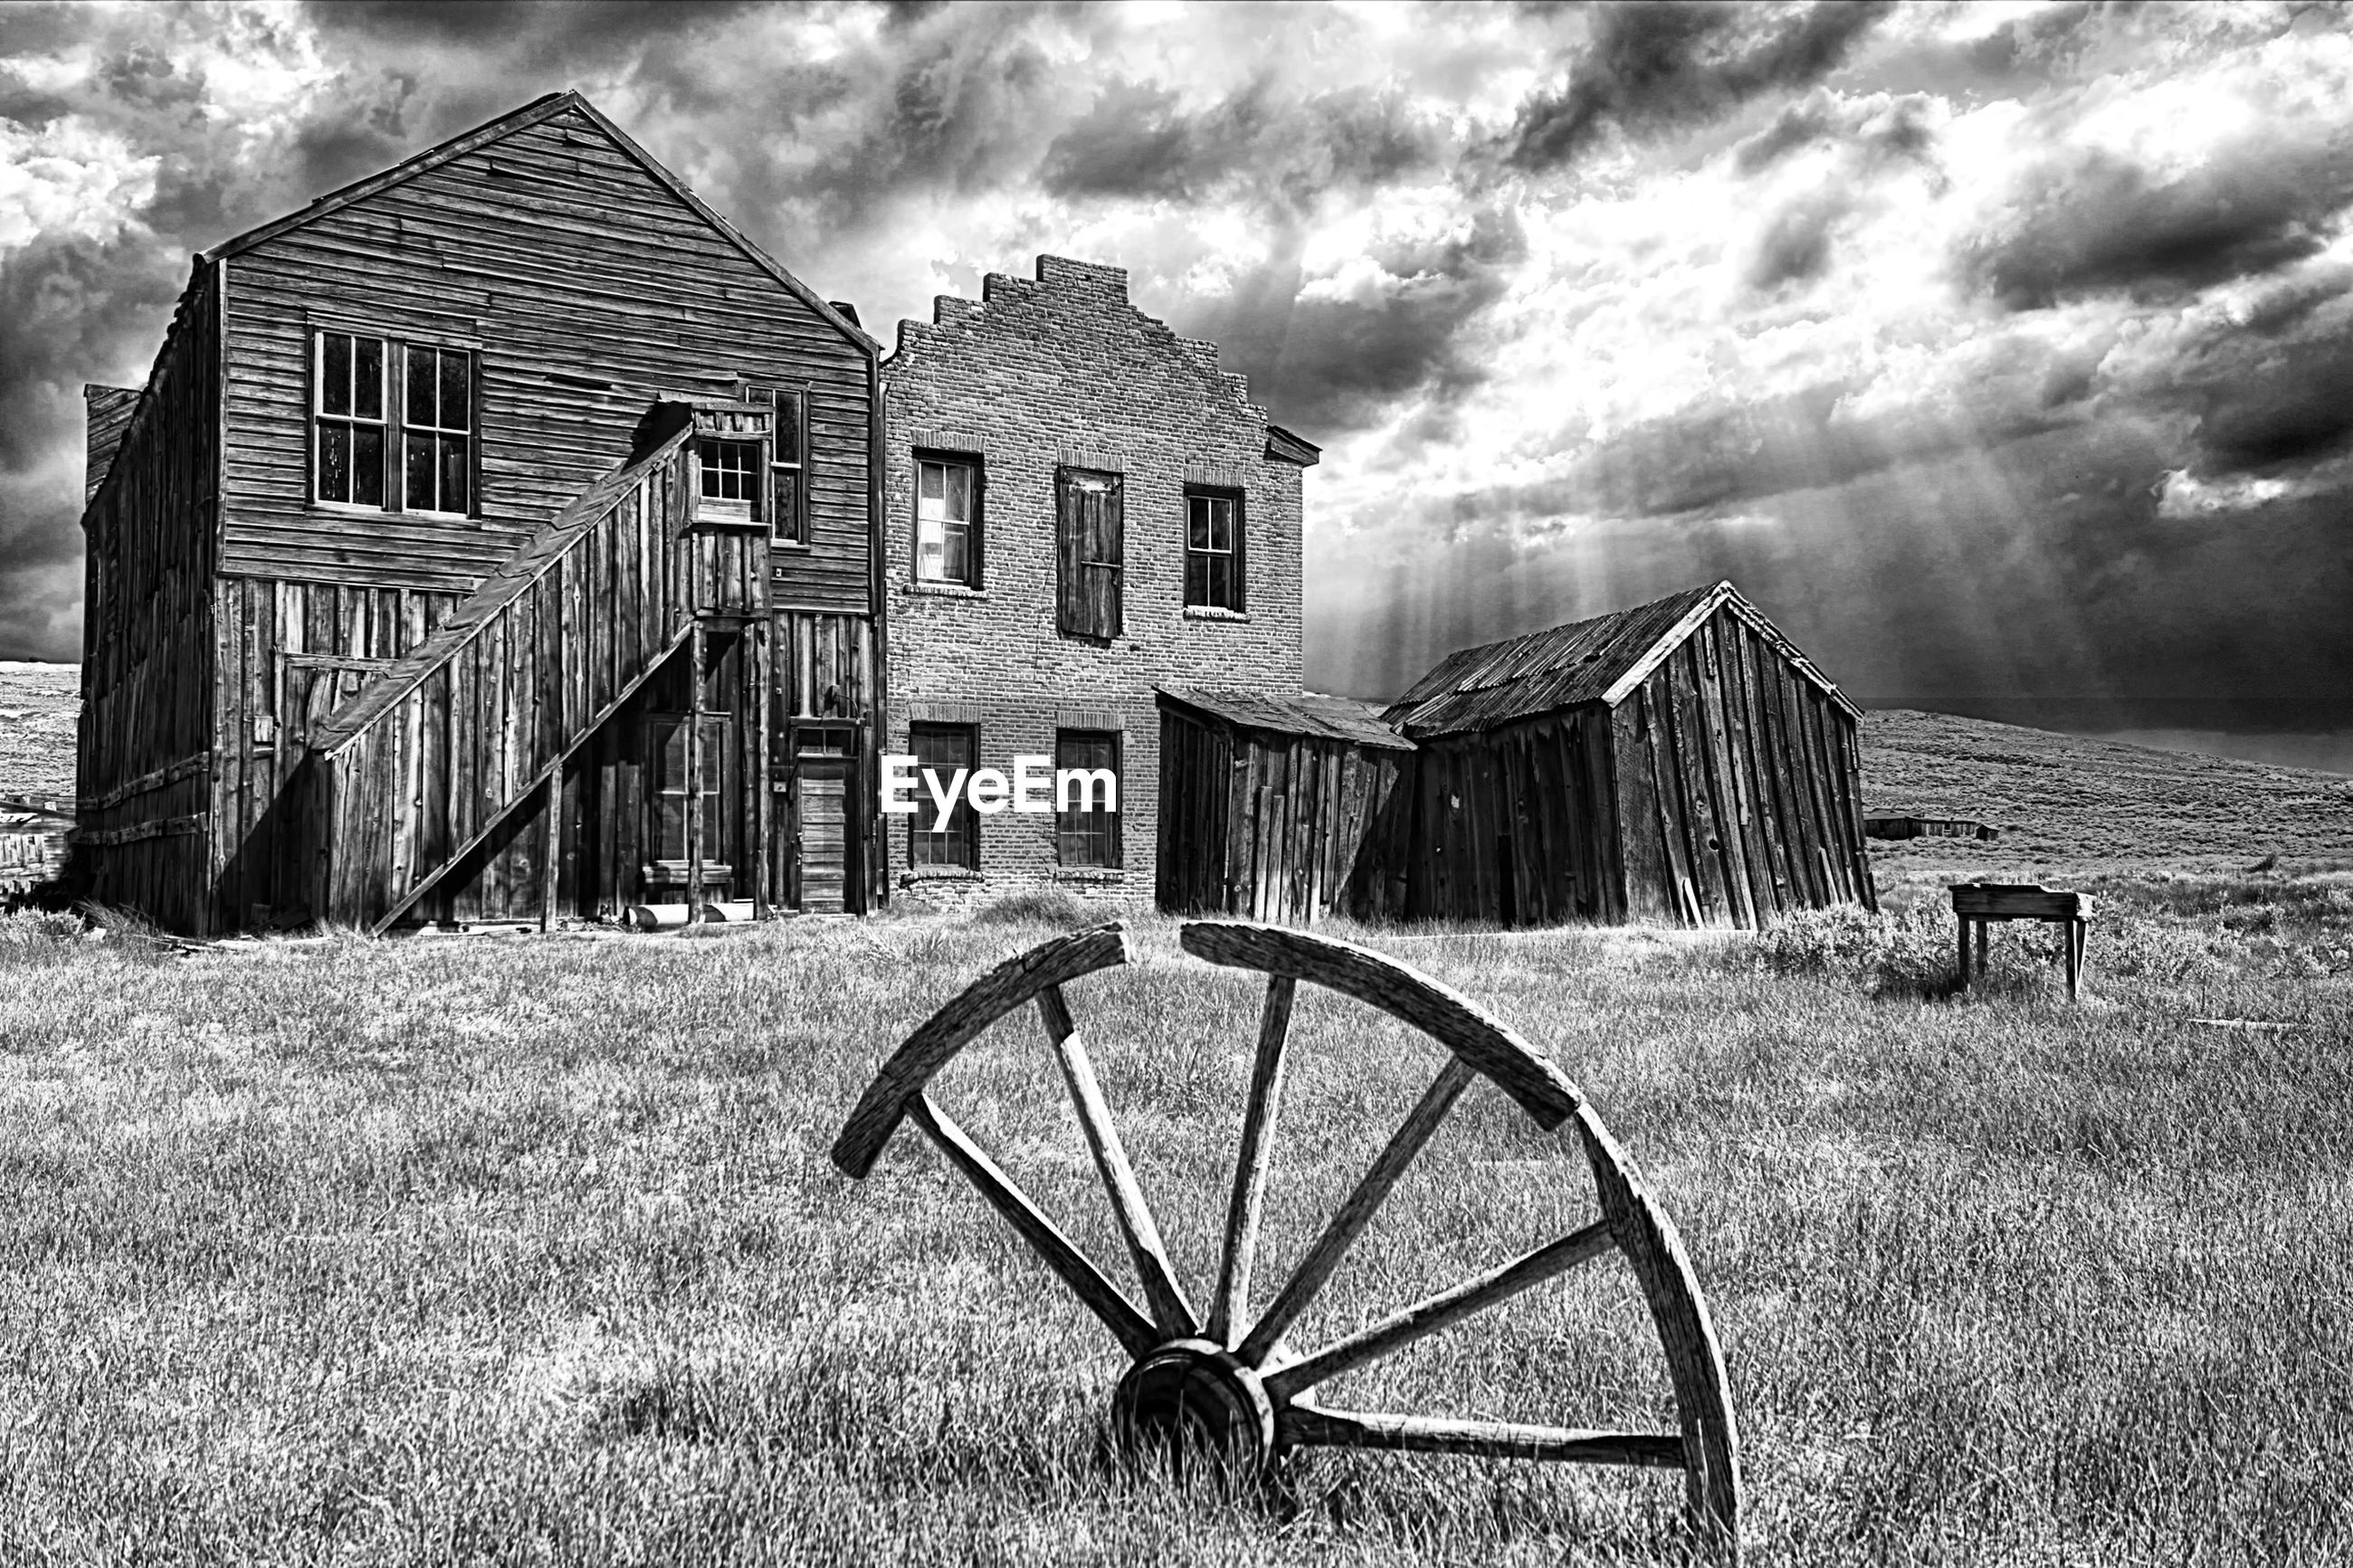 sky, cloud - sky, cloudy, building exterior, built structure, architecture, cloud, field, grass, house, transportation, land vehicle, abandoned, weather, bicycle, mode of transport, stationary, outdoors, landscape, no people